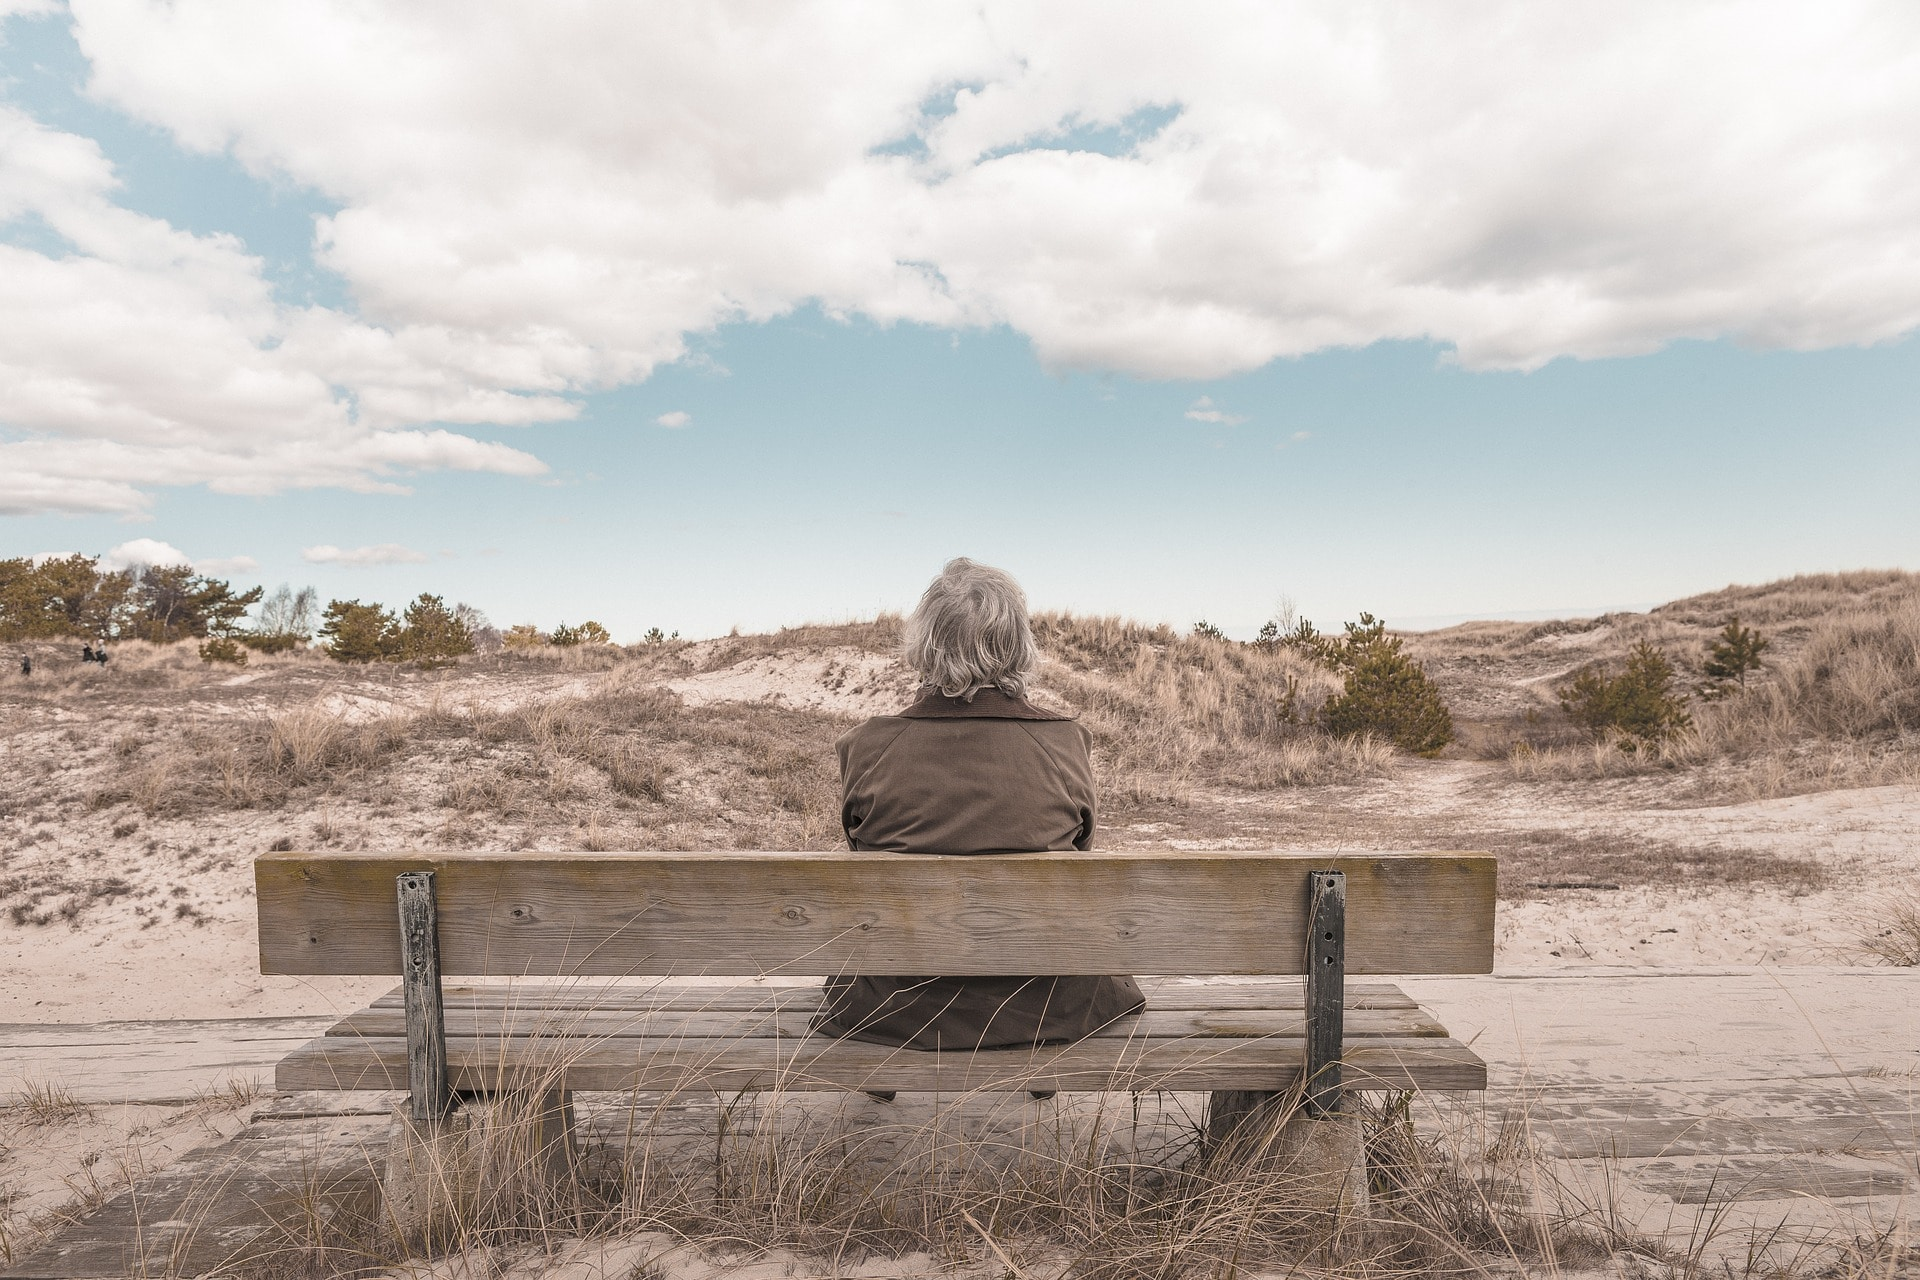 Person sitting alone on a bench looking at sand dunes